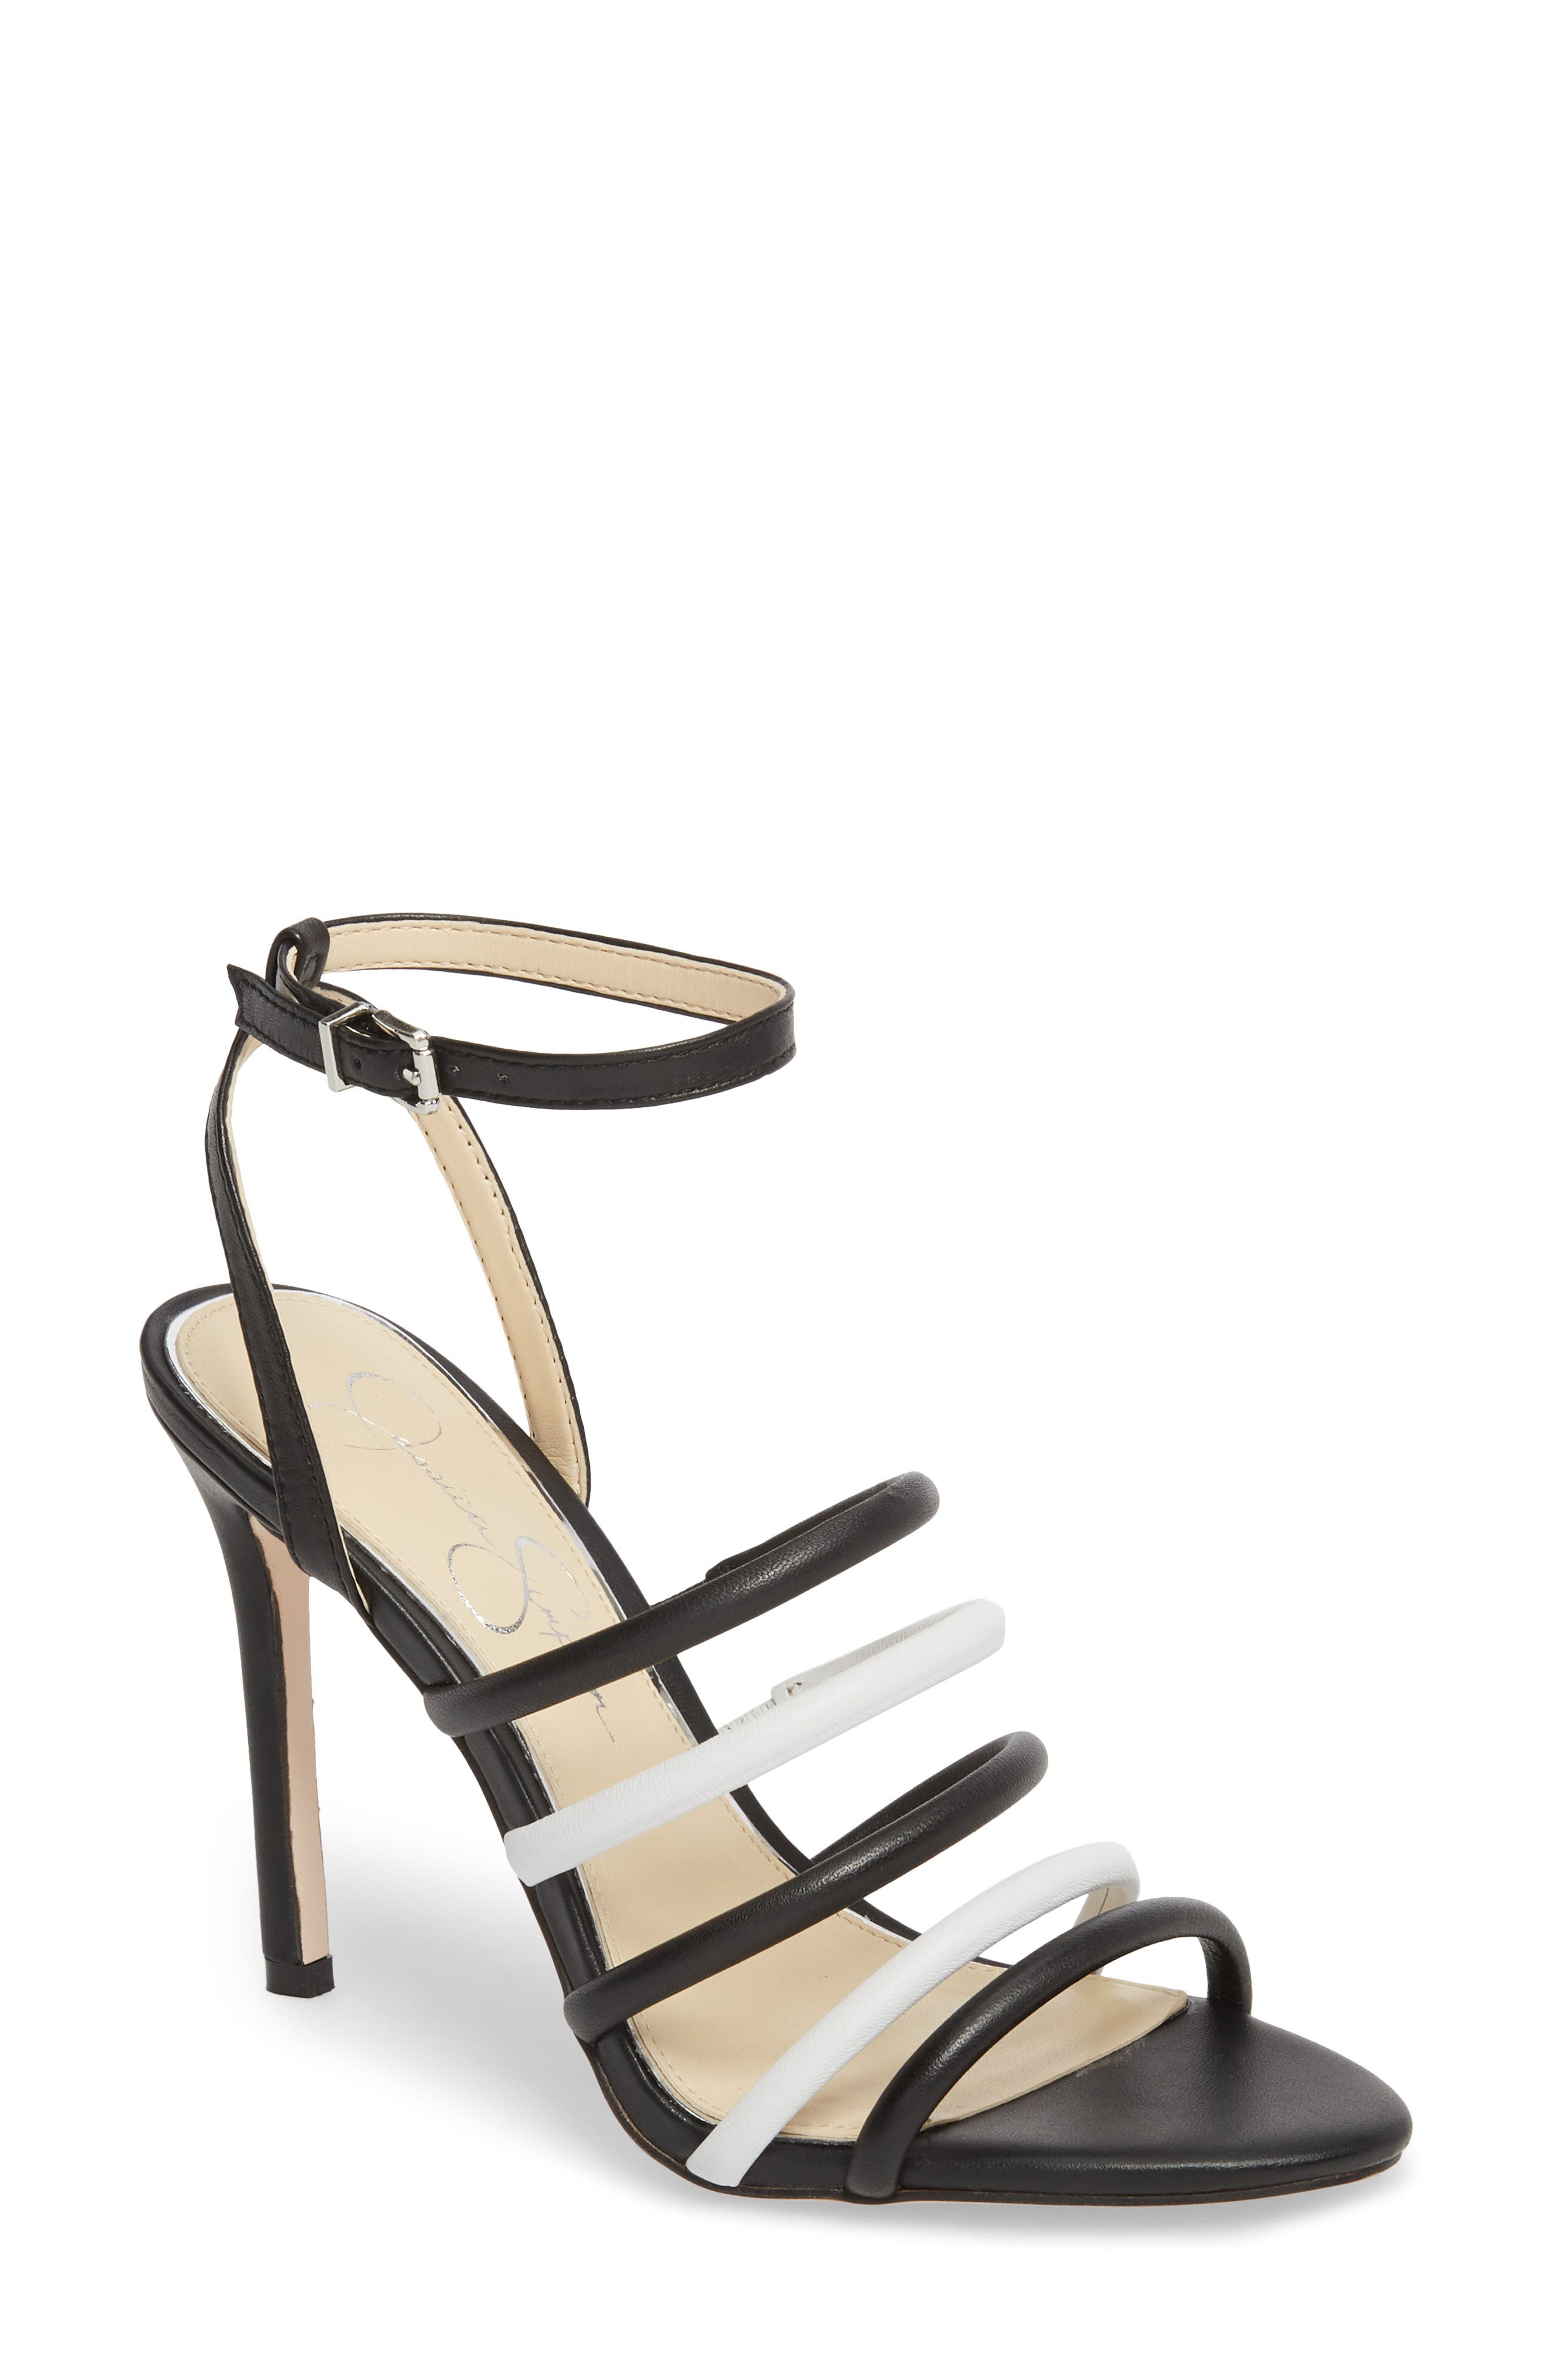 Joselle Strappy Sandal,                         Main,                         color,